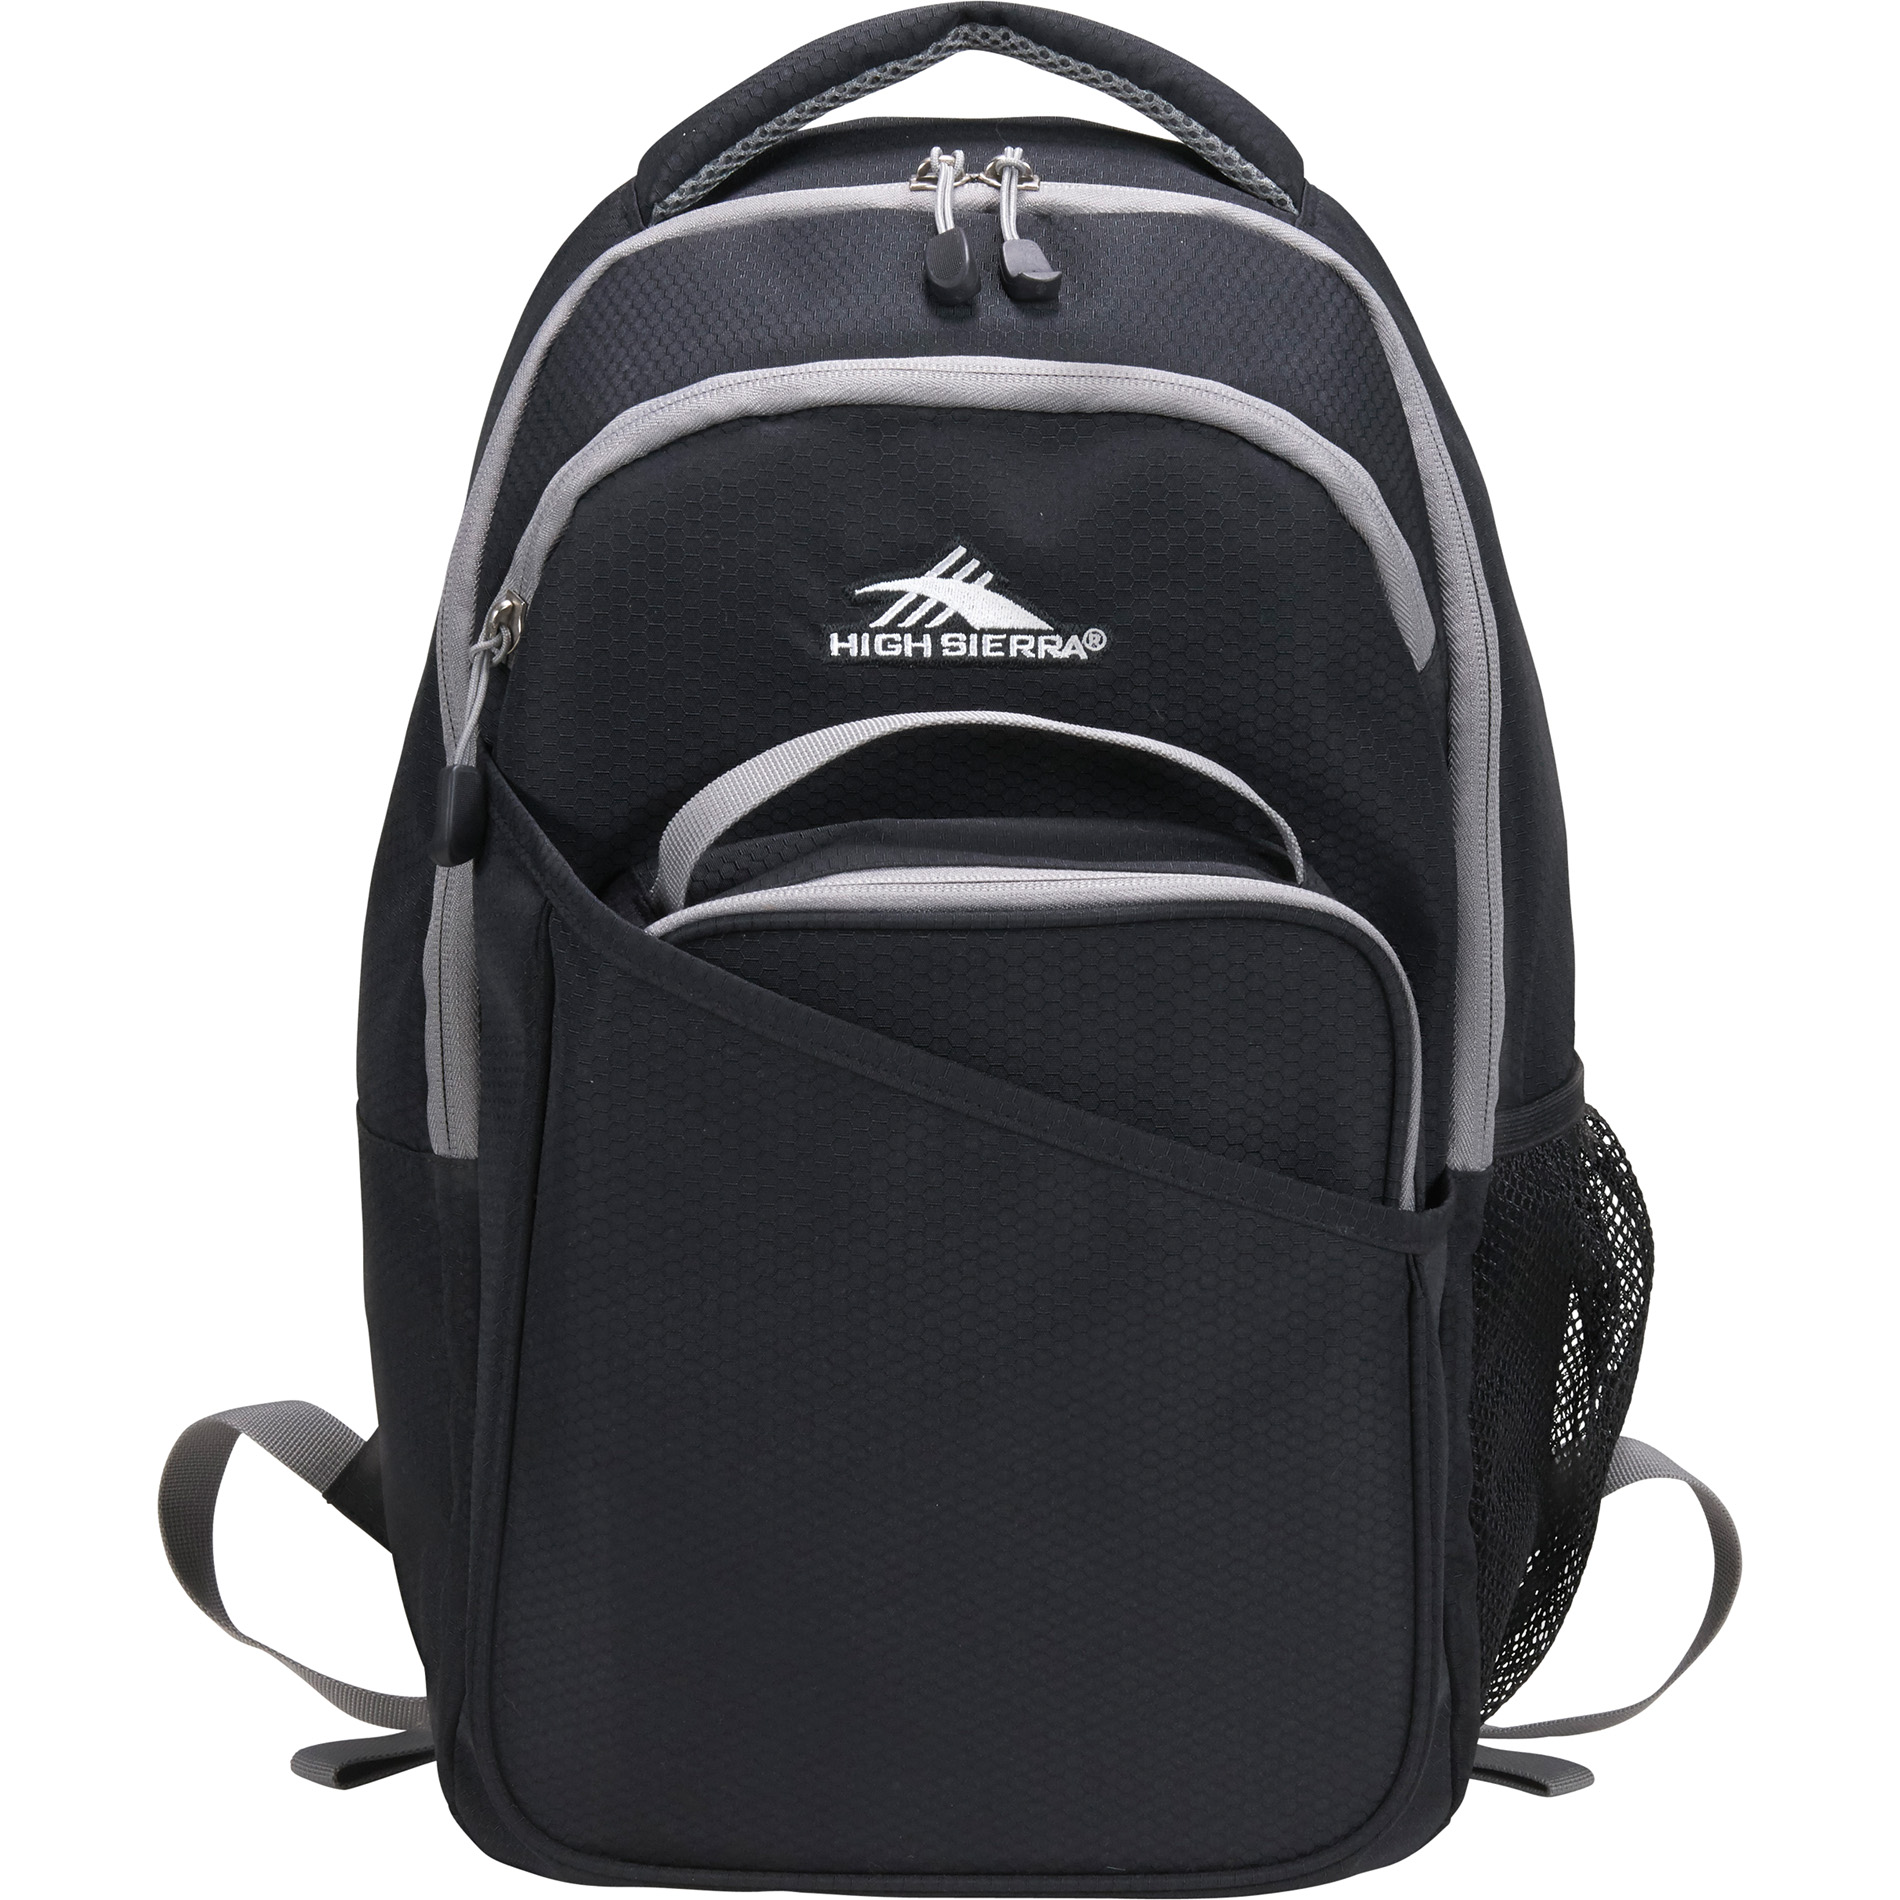 "High Sierra 8052-79 - 15"" Computer Backpack w/ Lunch Cooler"